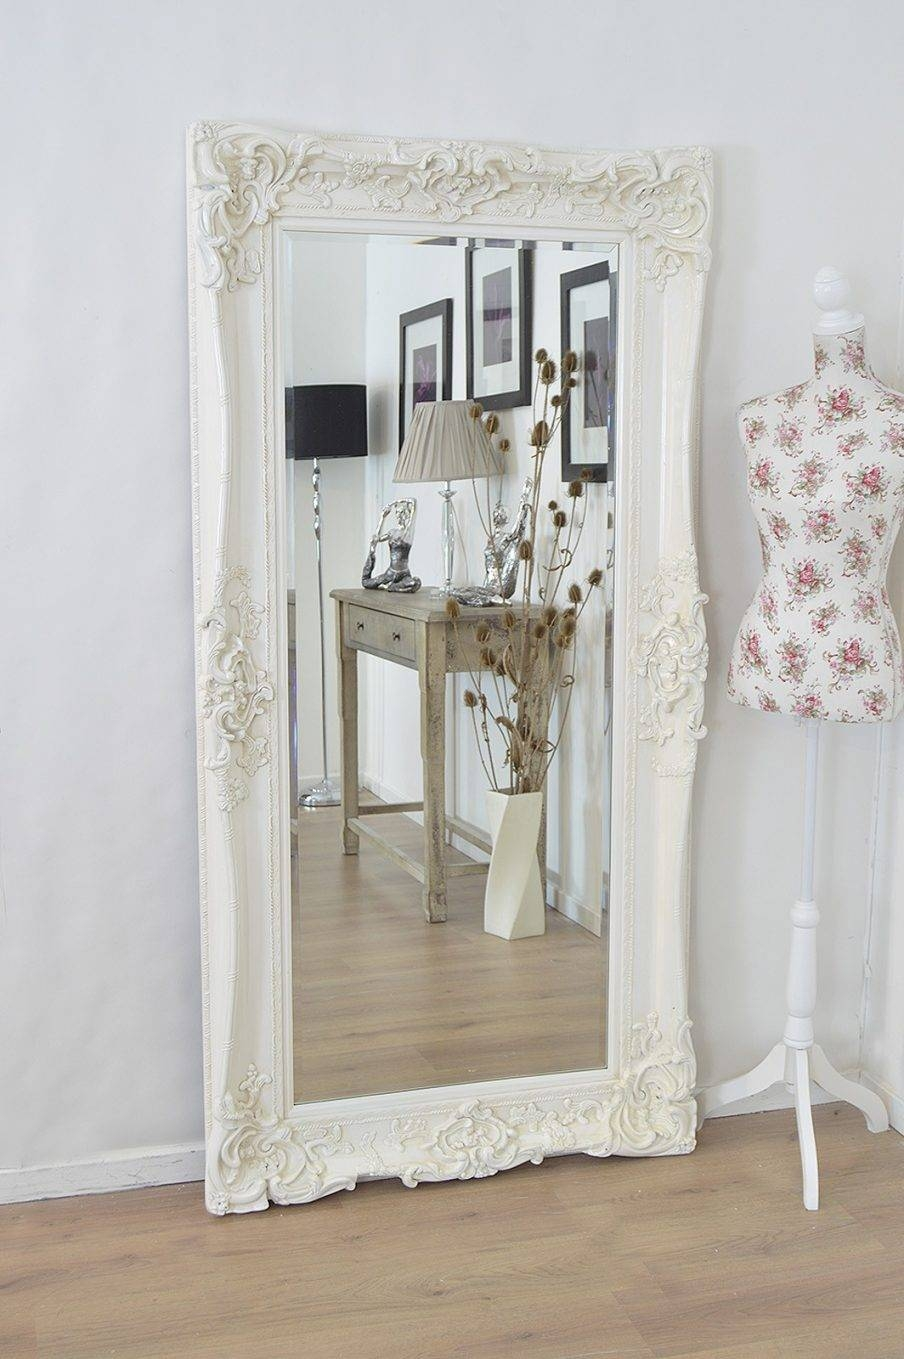 Outstanding White Shabby Chic Wall Mirror Cozy Shabby Chic Mirrors in White Large Shabby Chic Mirrors (Image 11 of 15)